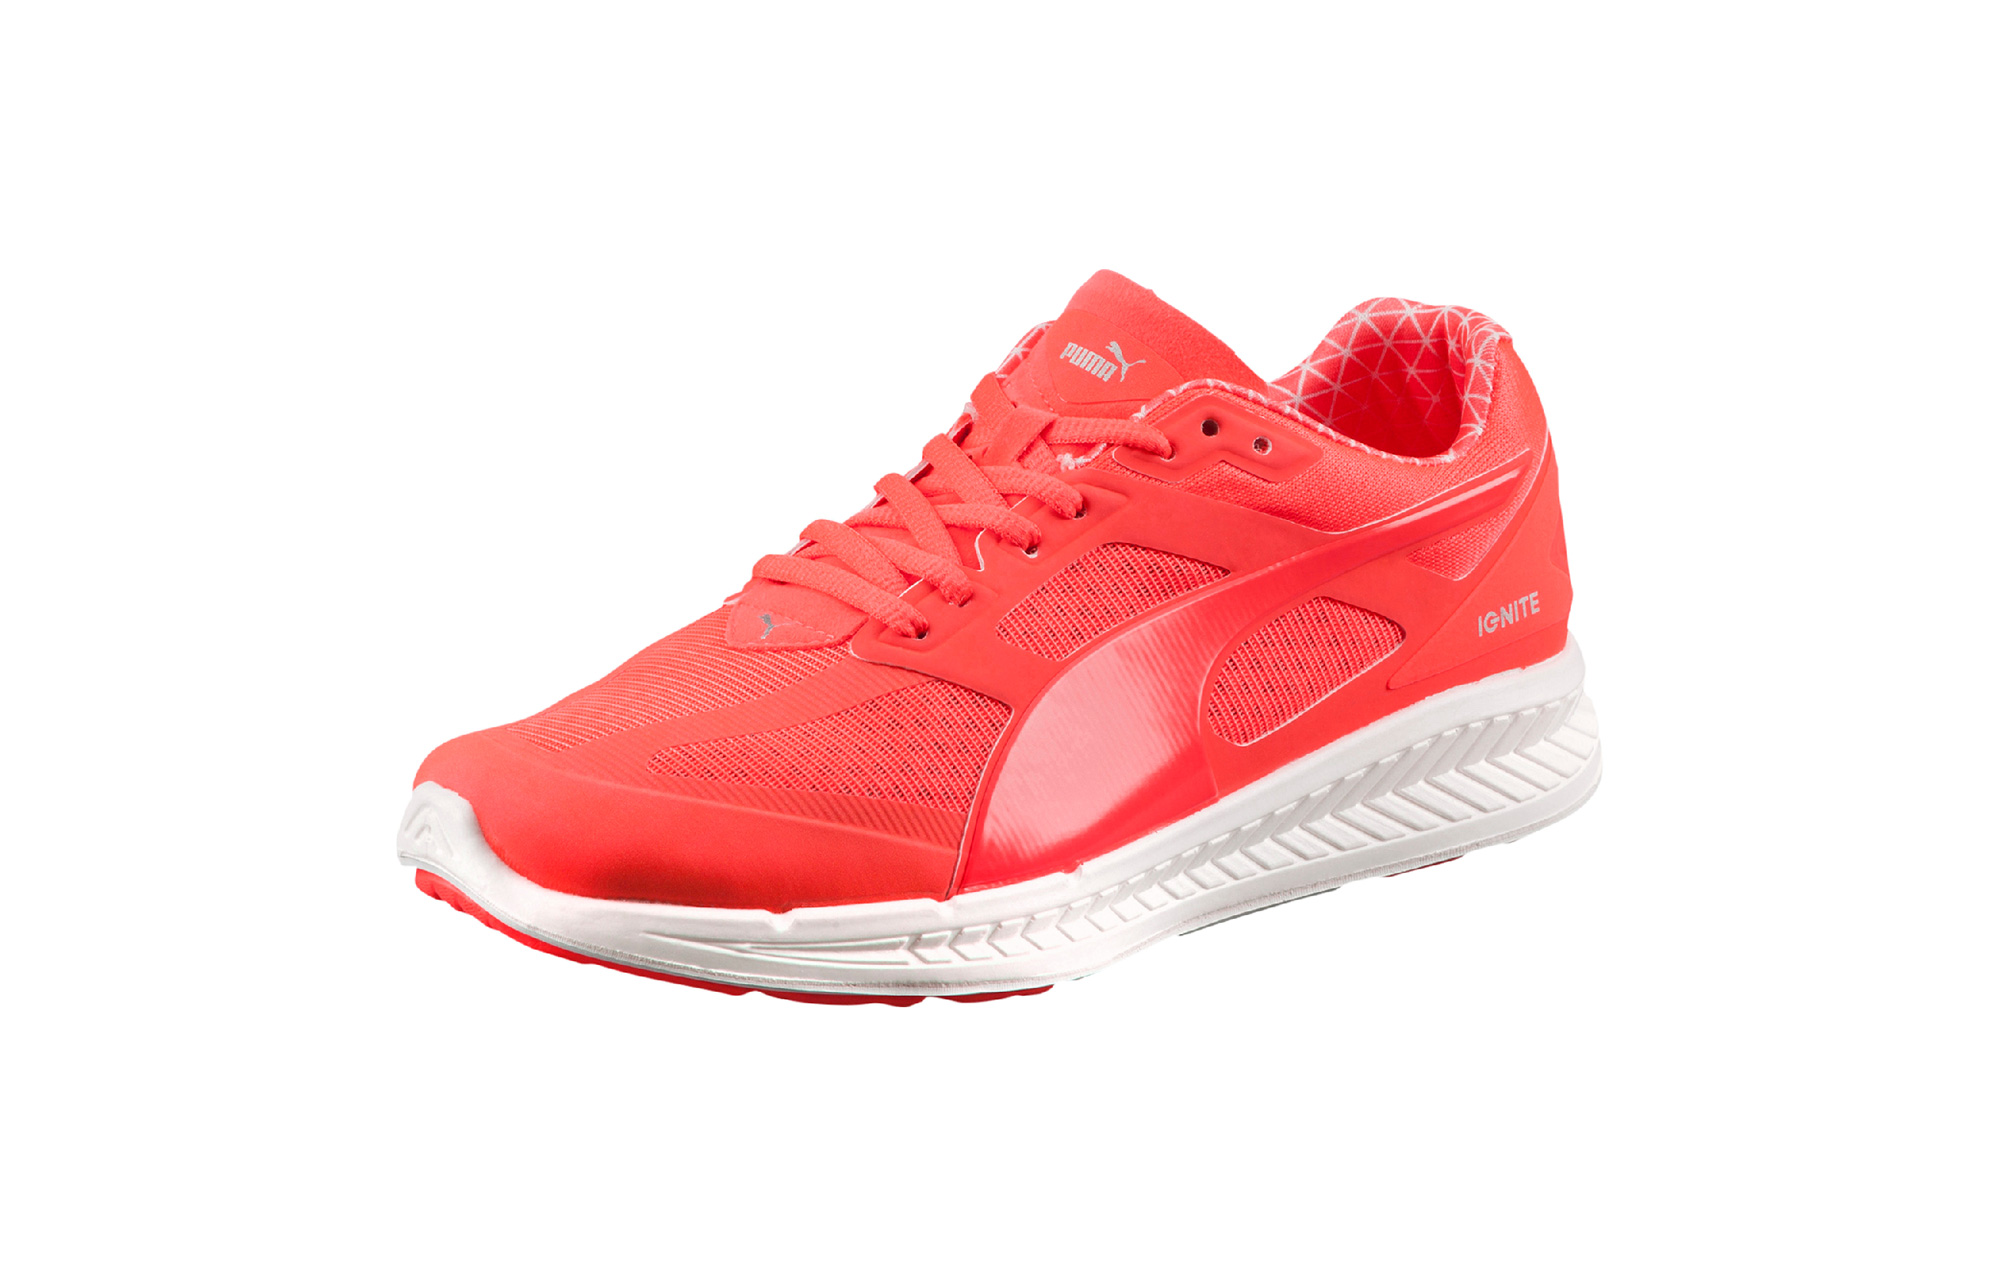 pretty nice 723ee b9e7a Puma Running shoes Women IGNITE Orange White